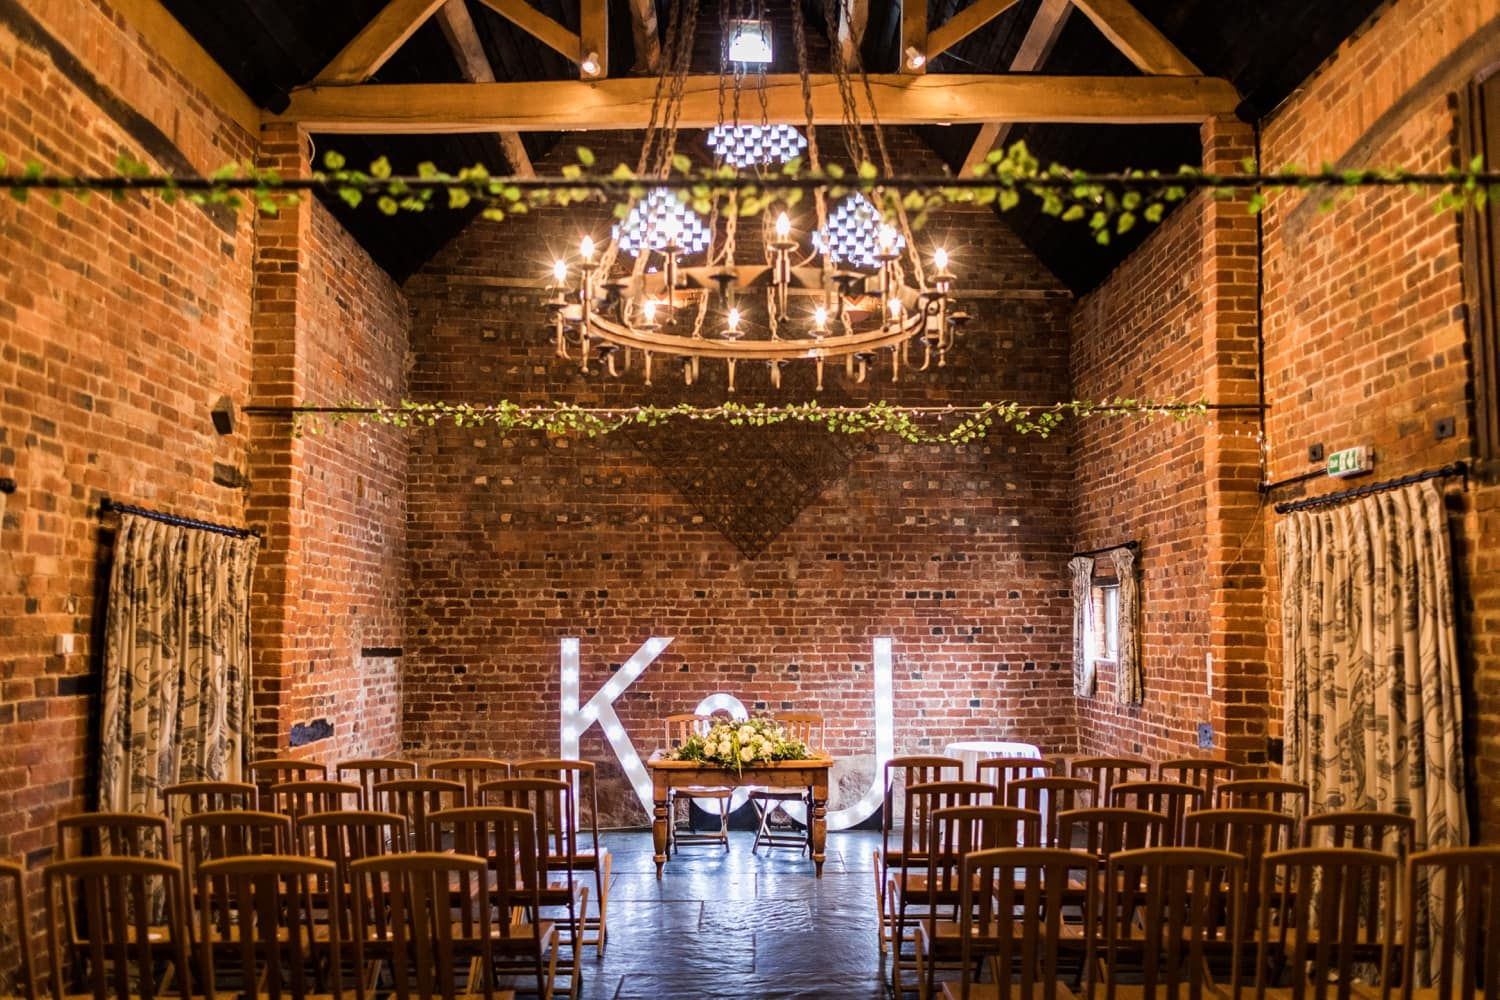 Inside of Curradien Barns ready for a wedding ceremony